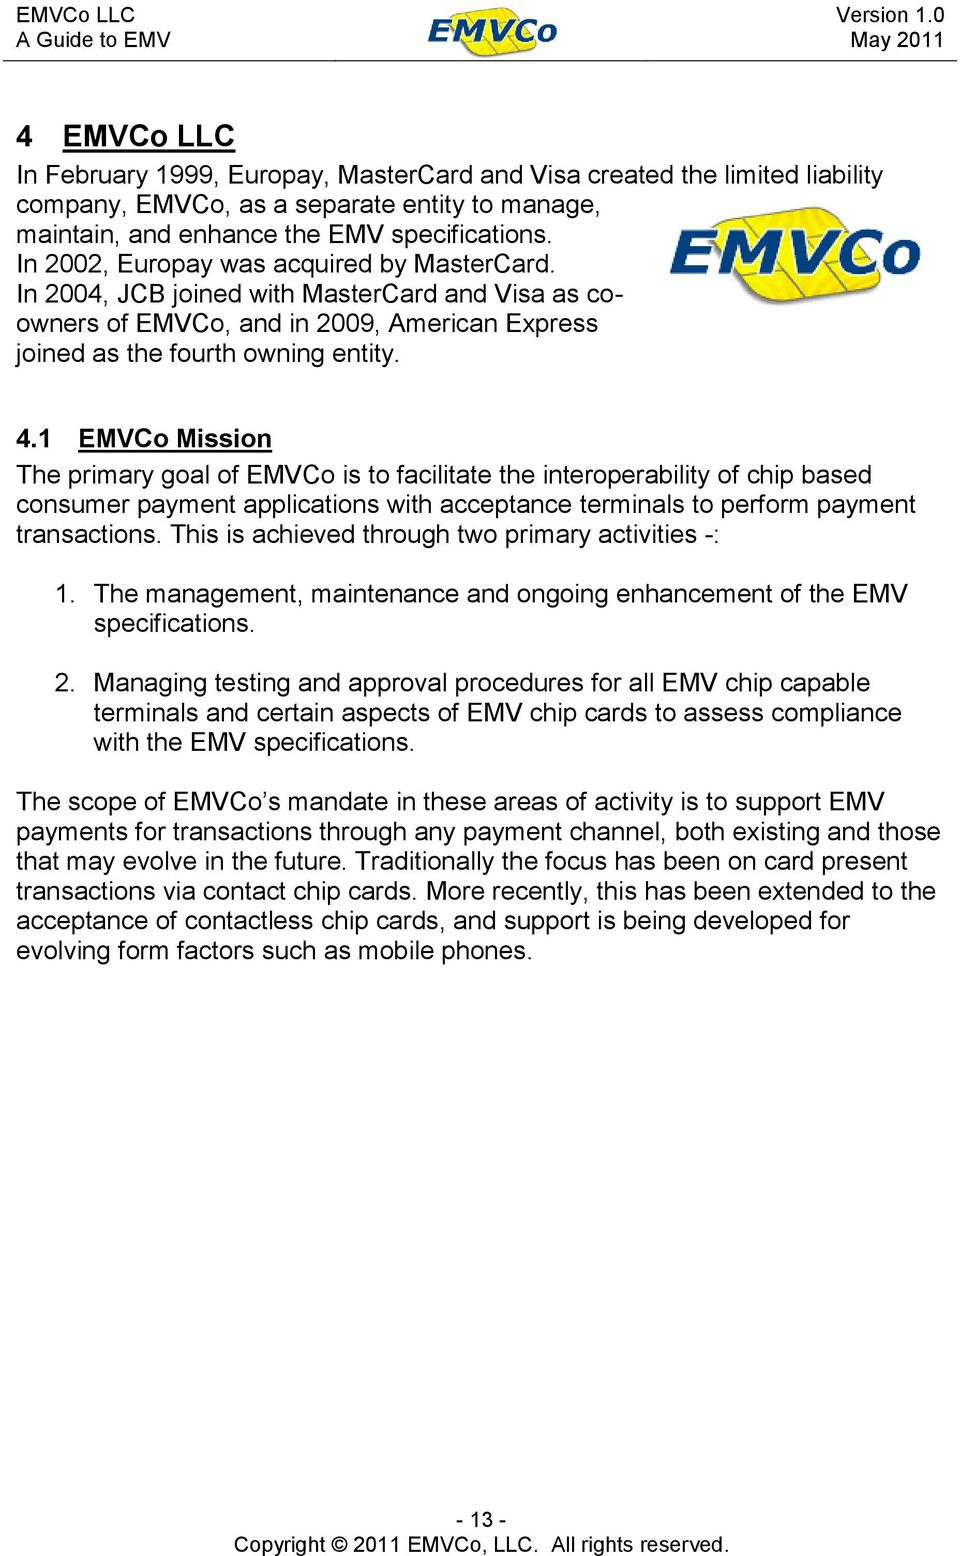 1 EMVCo Mission The primary goal of EMVCo is to facilitate the interoperability of chip based consumer payment applications with acceptance terminals to perform payment transactions.